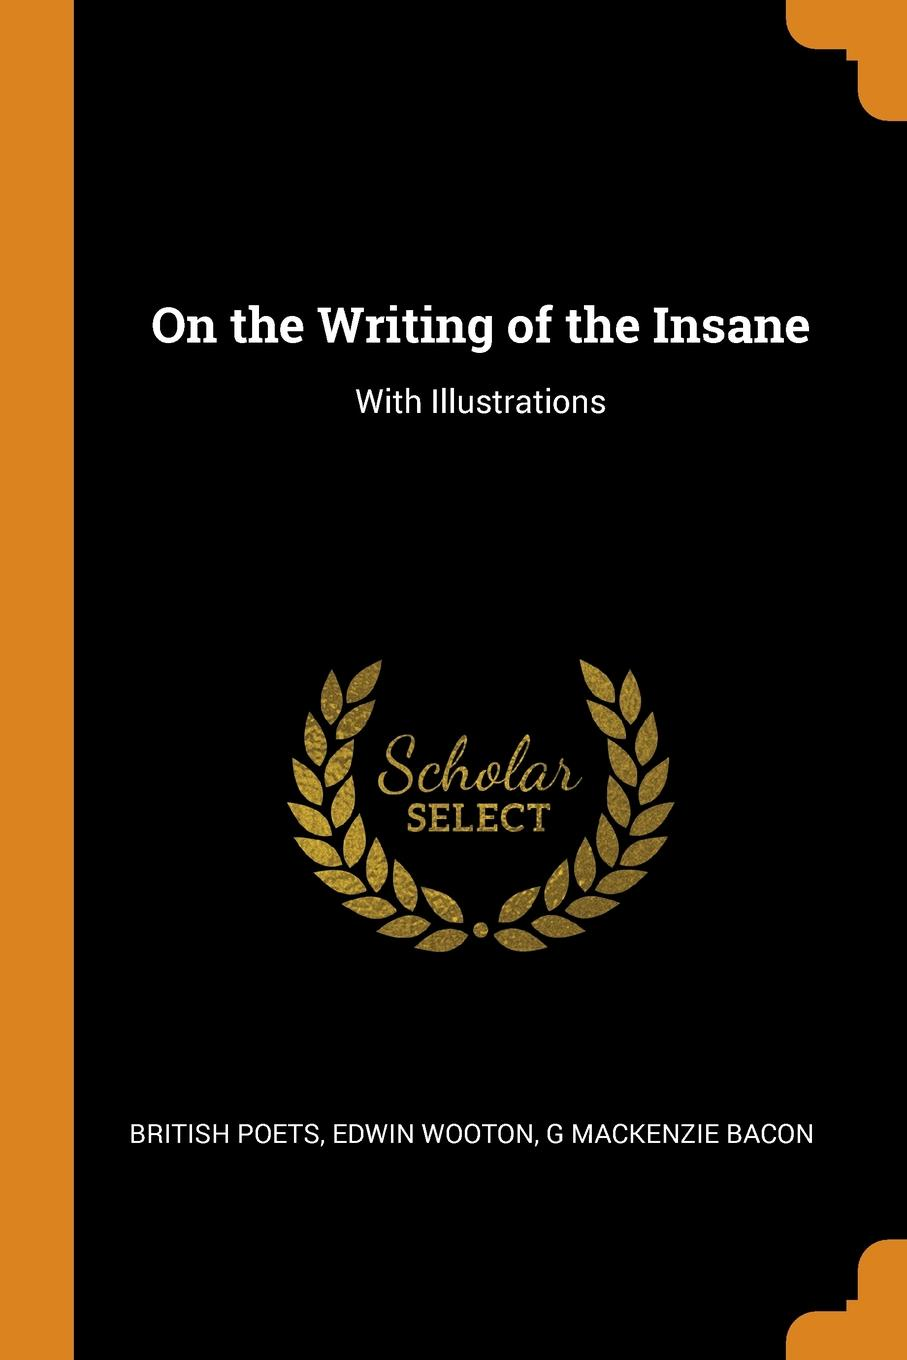 British Poets, Edwin Wooton, G Mackenzie Bacon. On the Writing of the Insane. With Illustrations